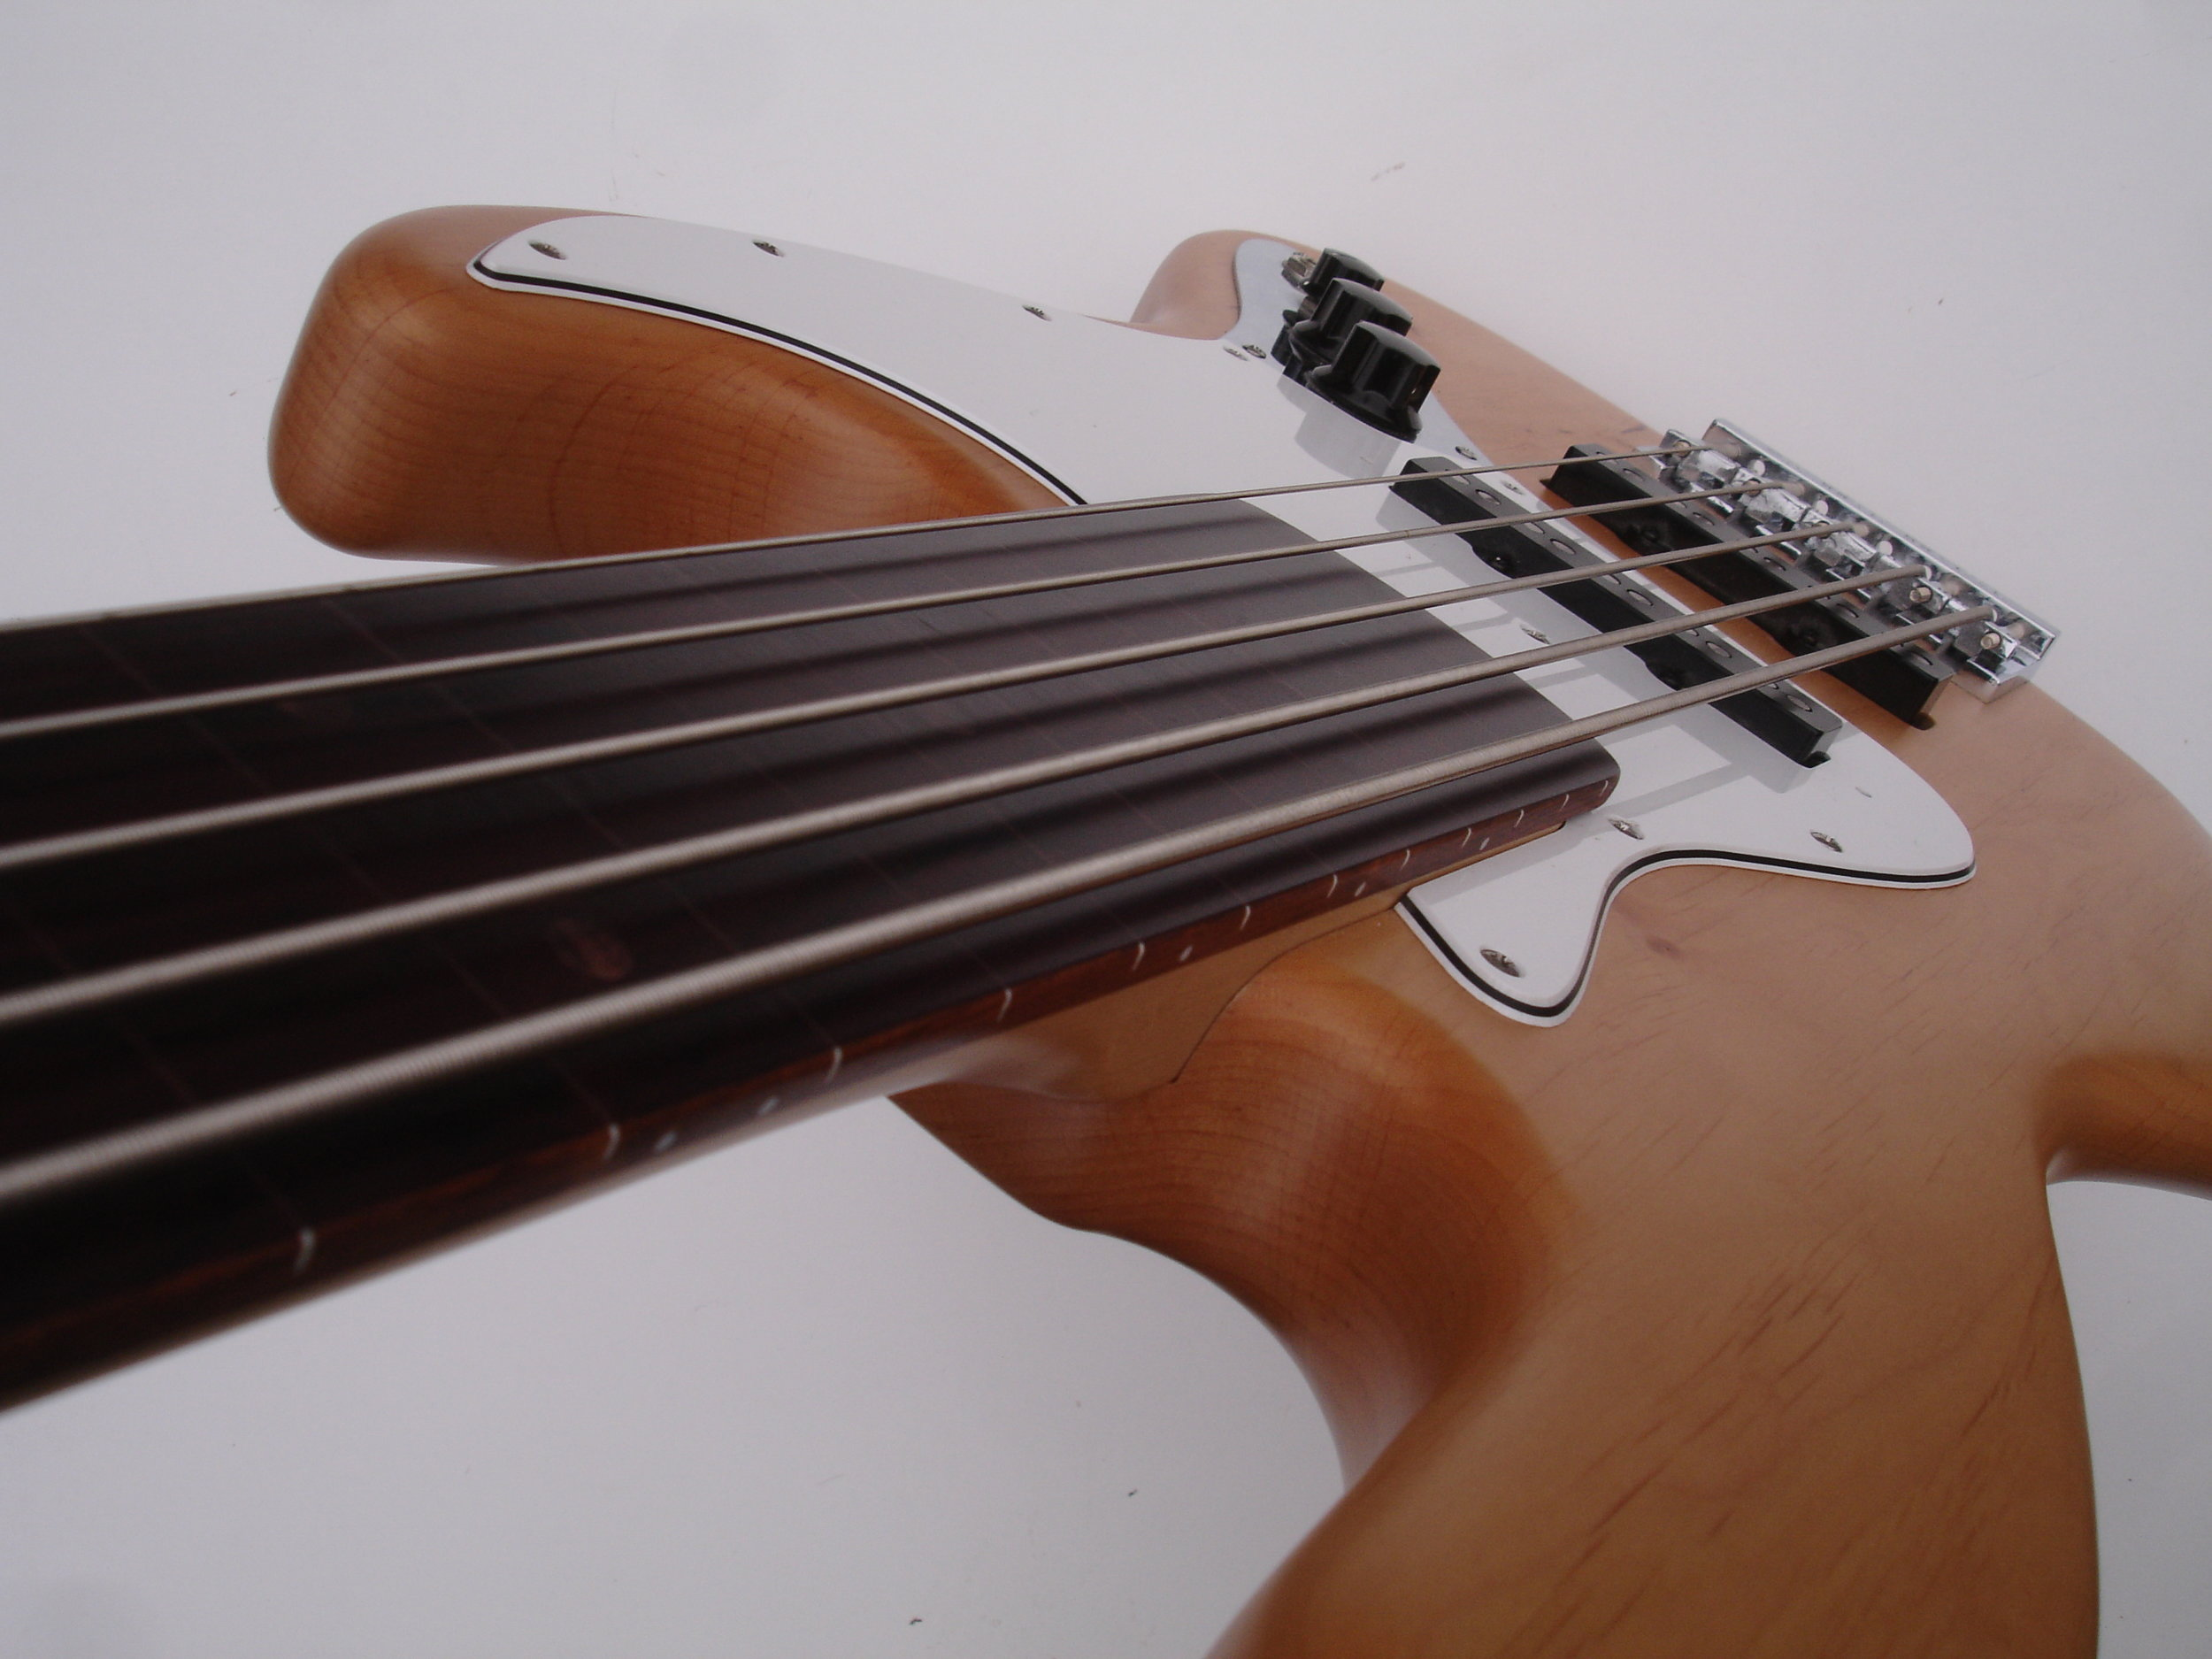 Fretless - No frets - round tone: Jaco sends his regards